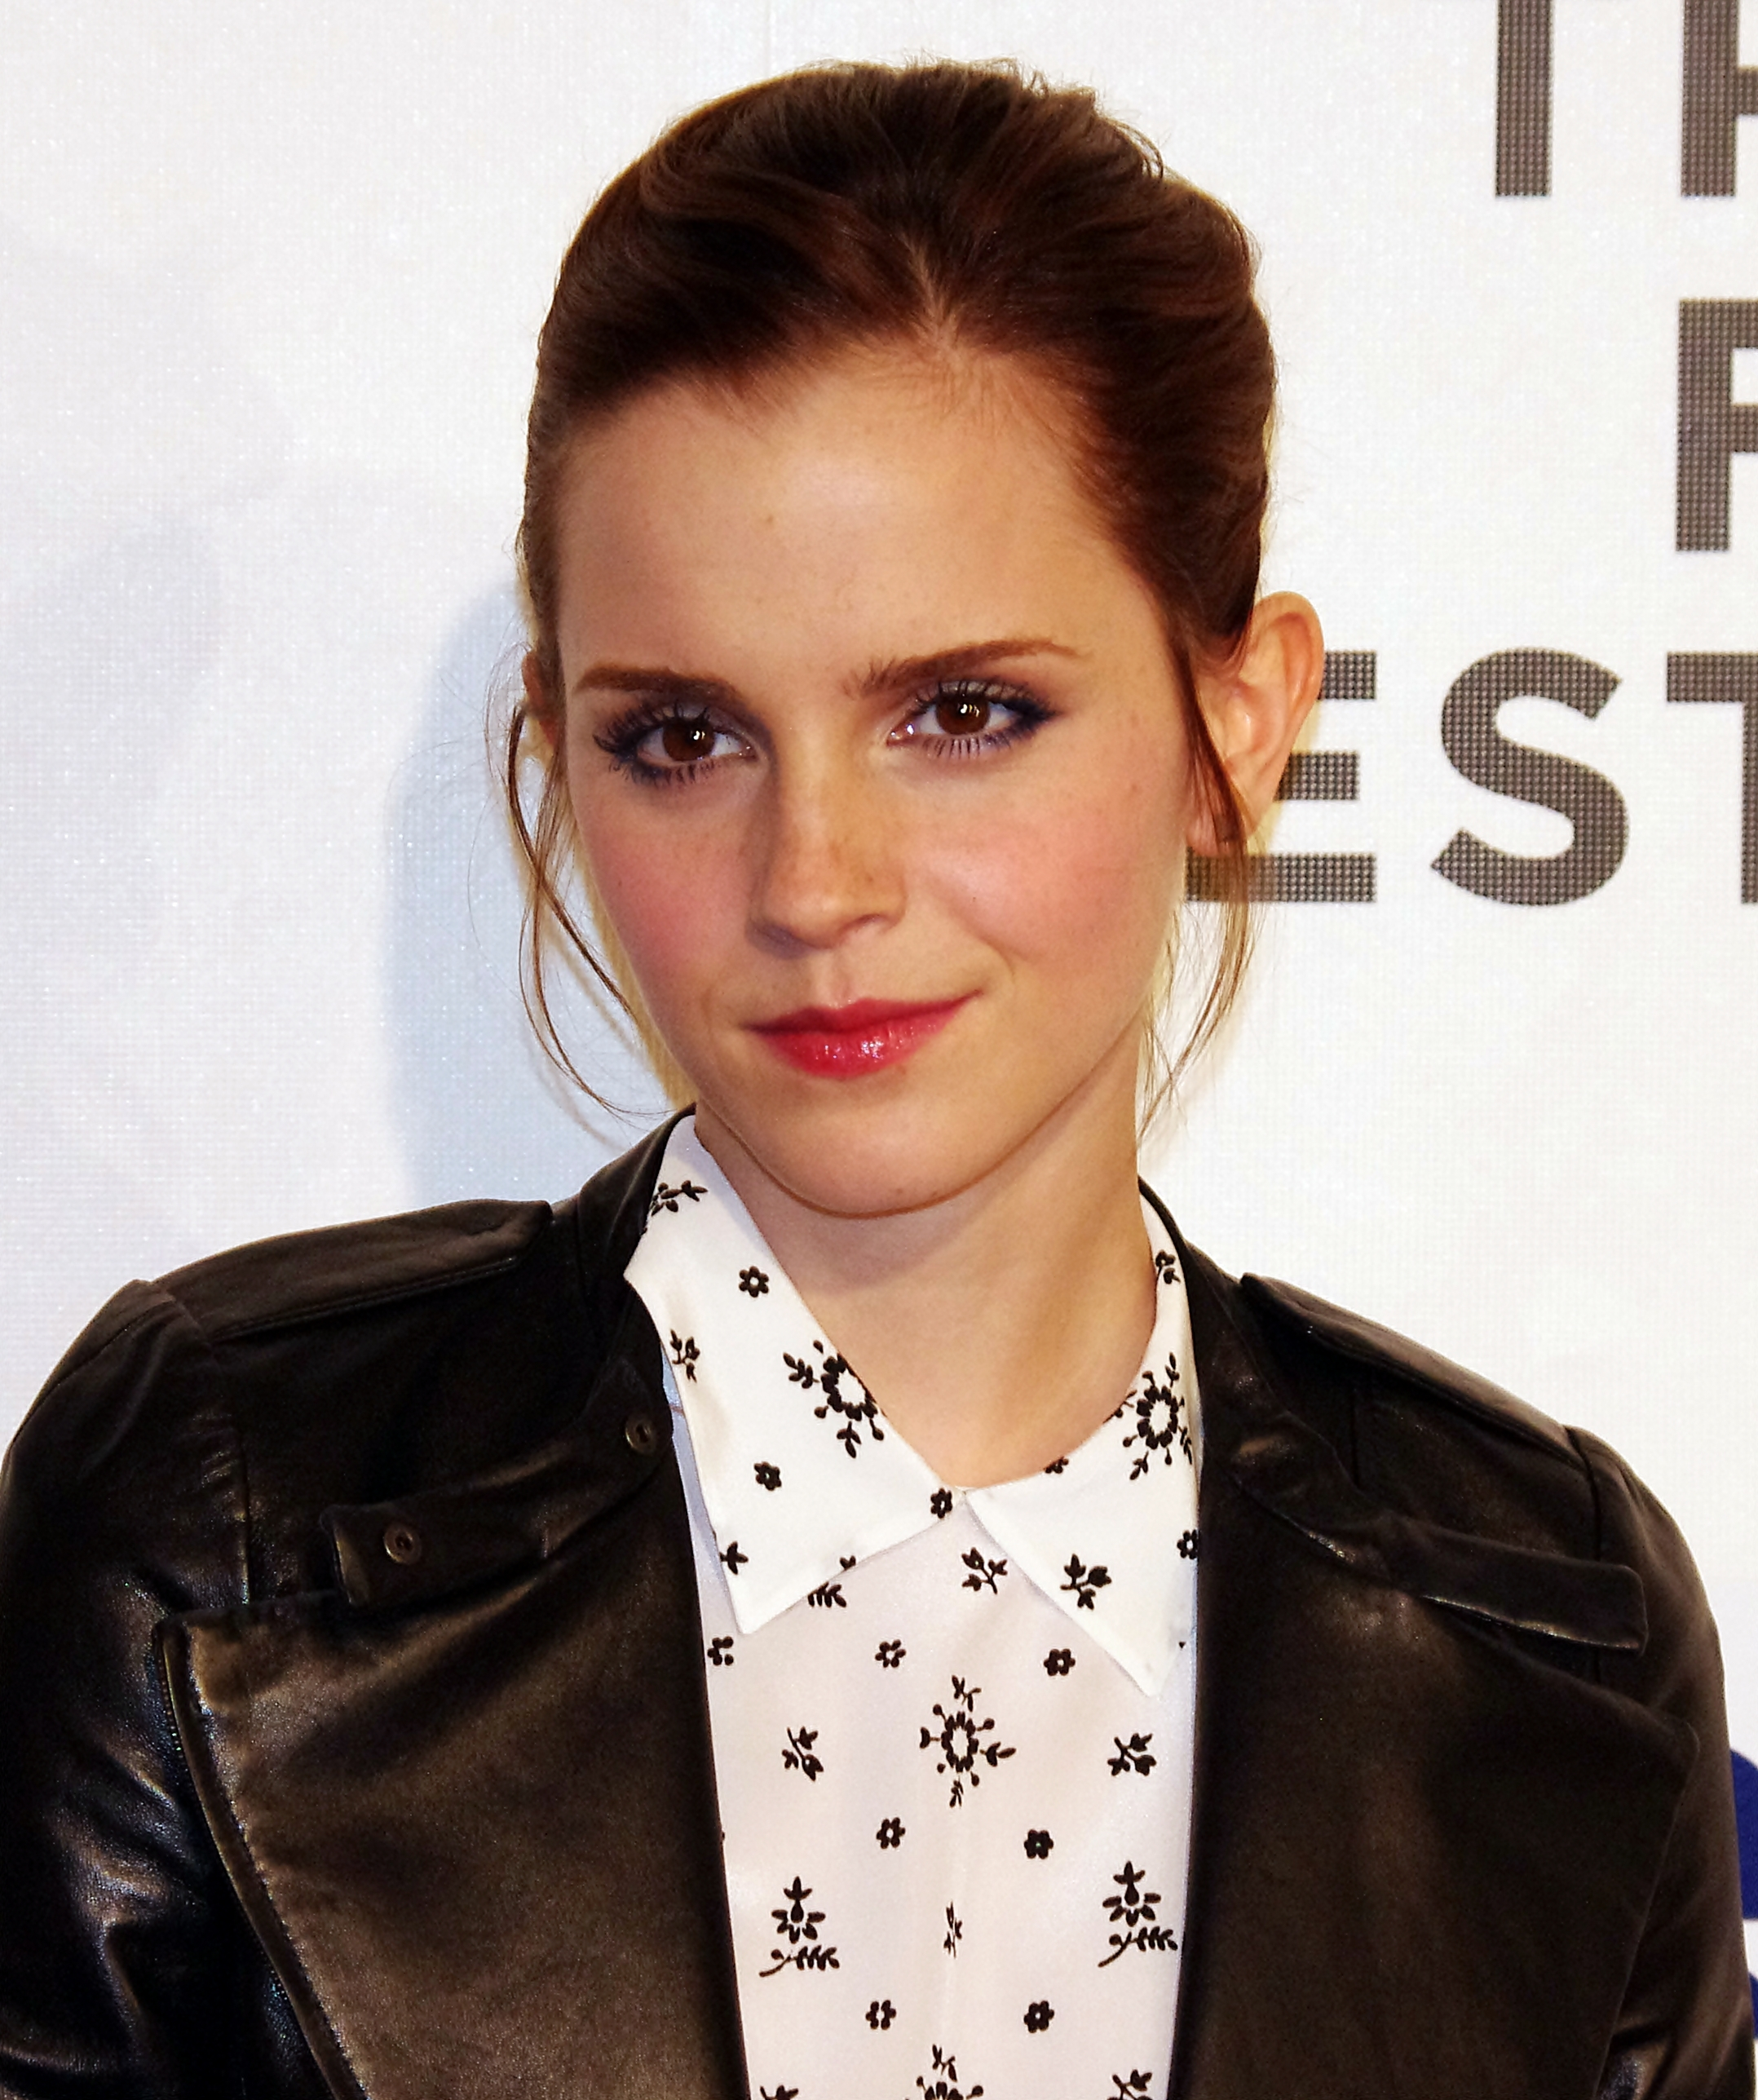 Description Emma Watson 2012.jpg